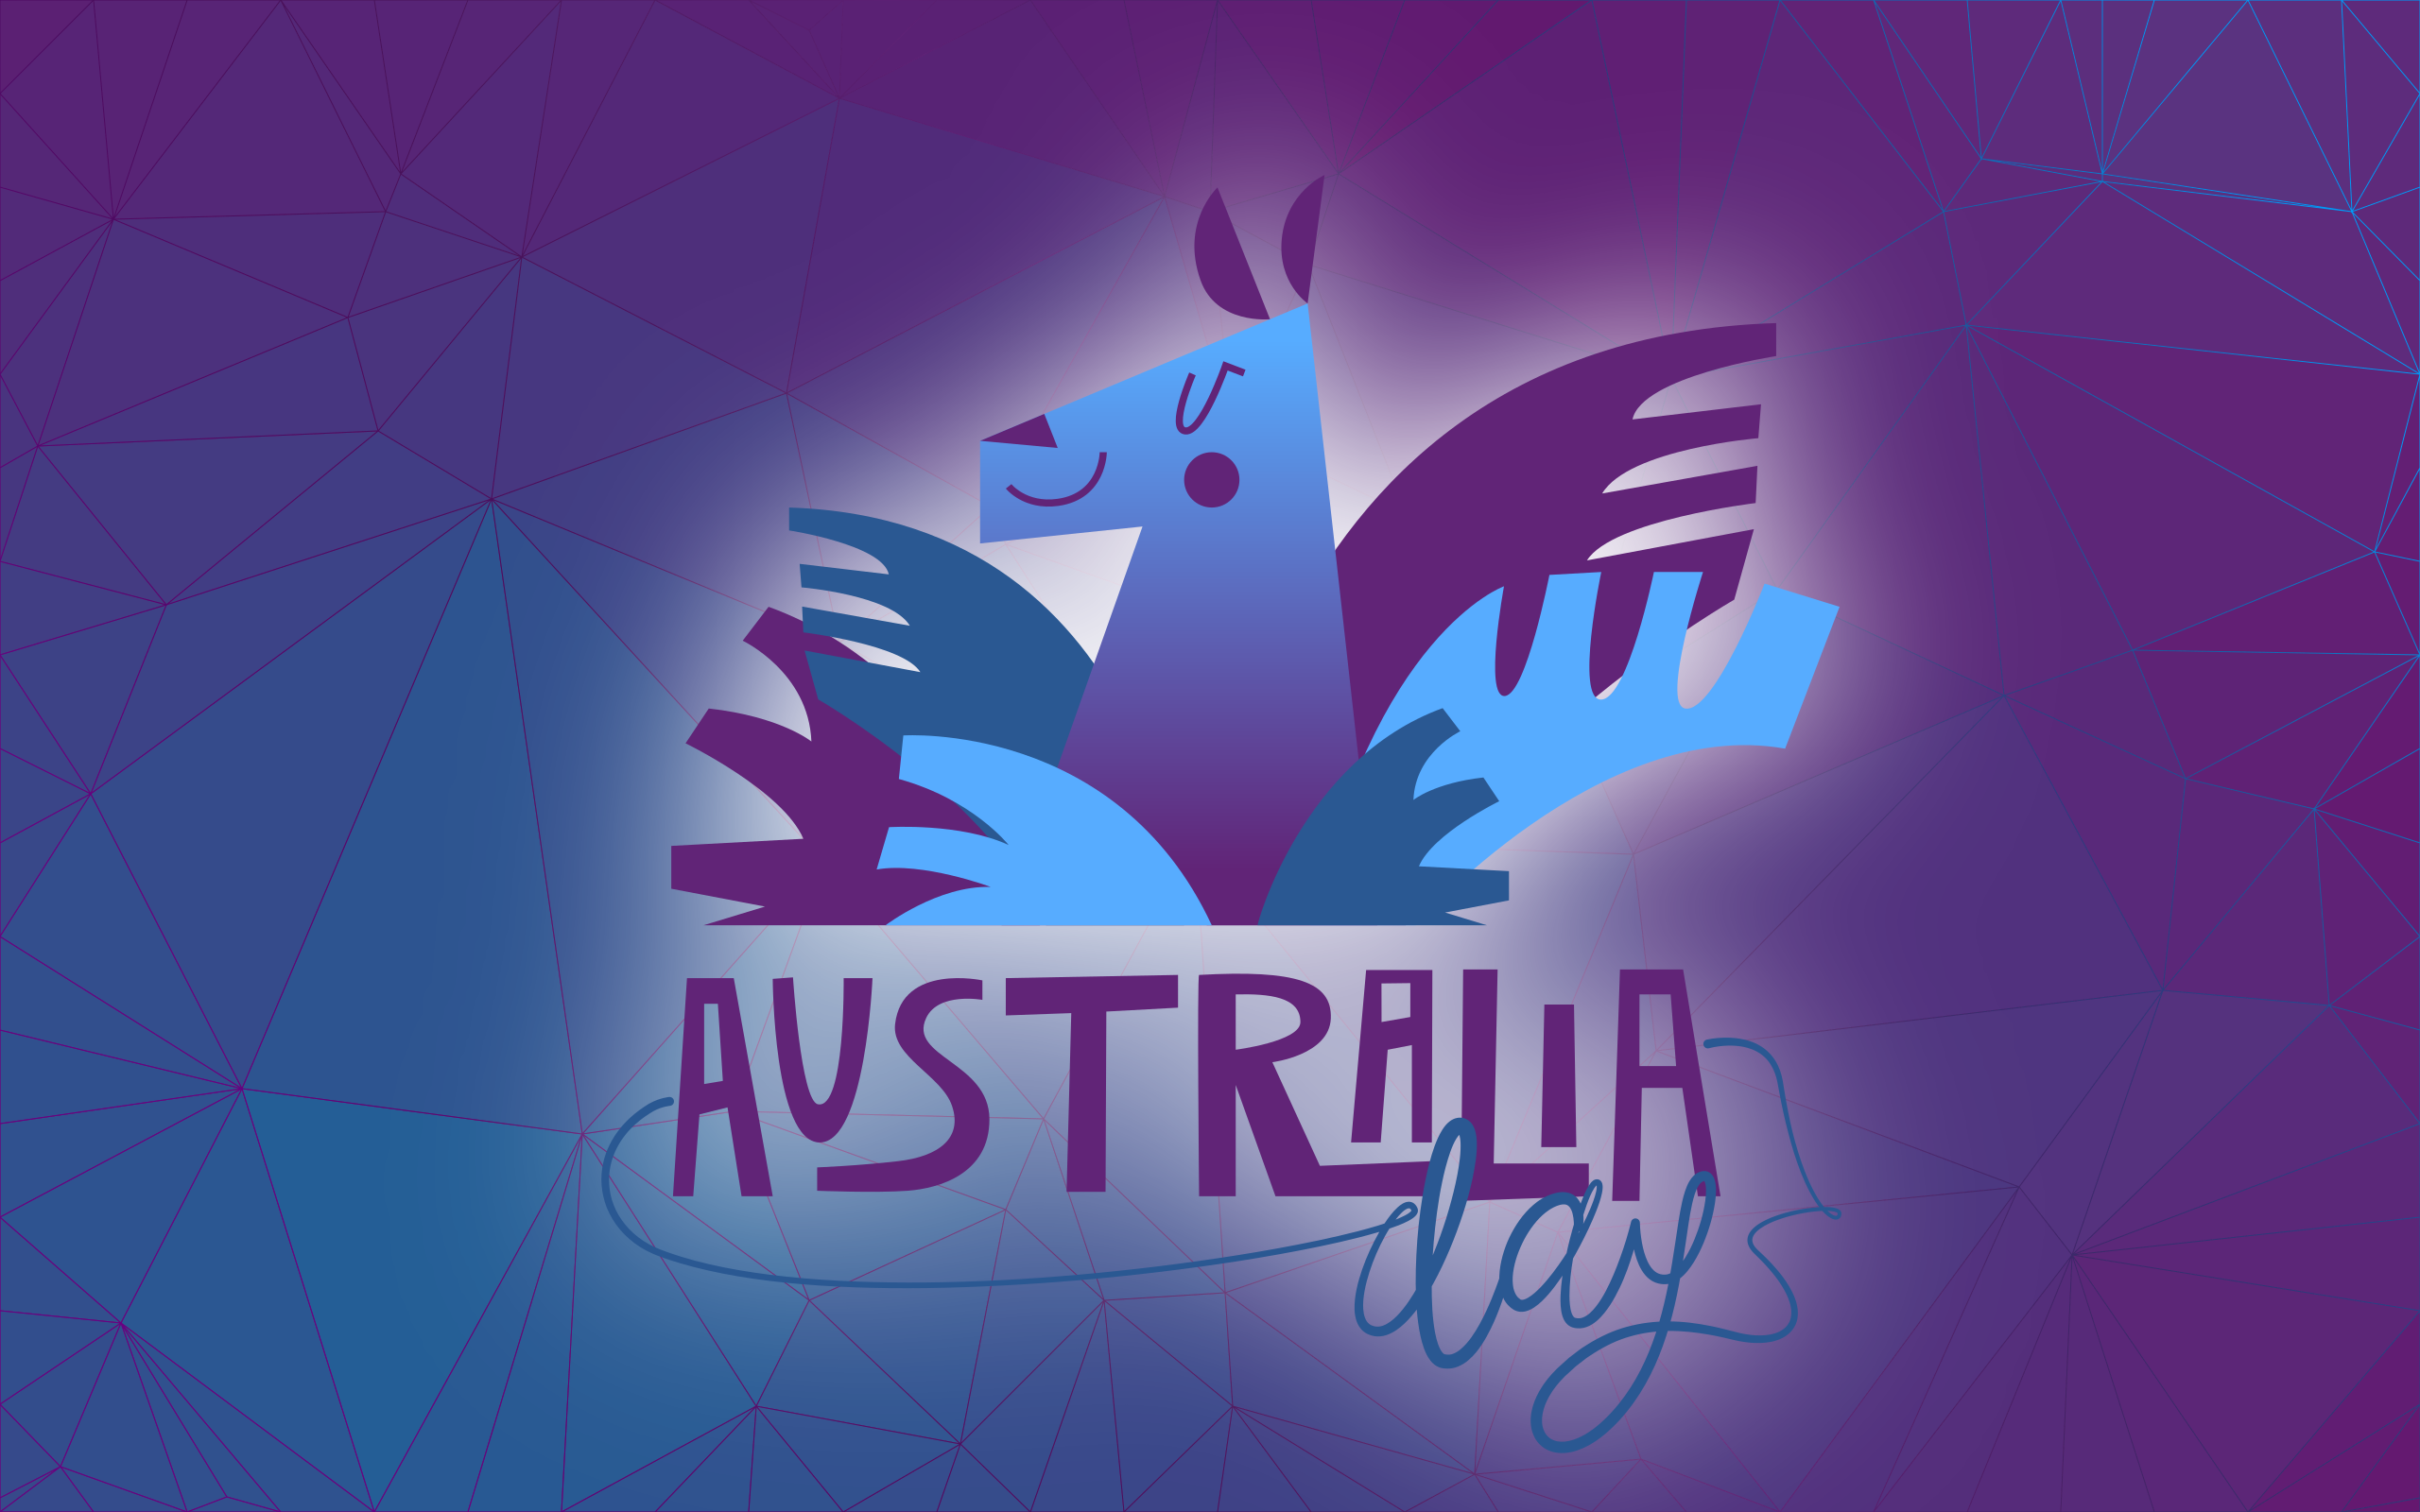 Artistic Australia Day Wallpaper HD Wallpaper Background Image 2560x1600